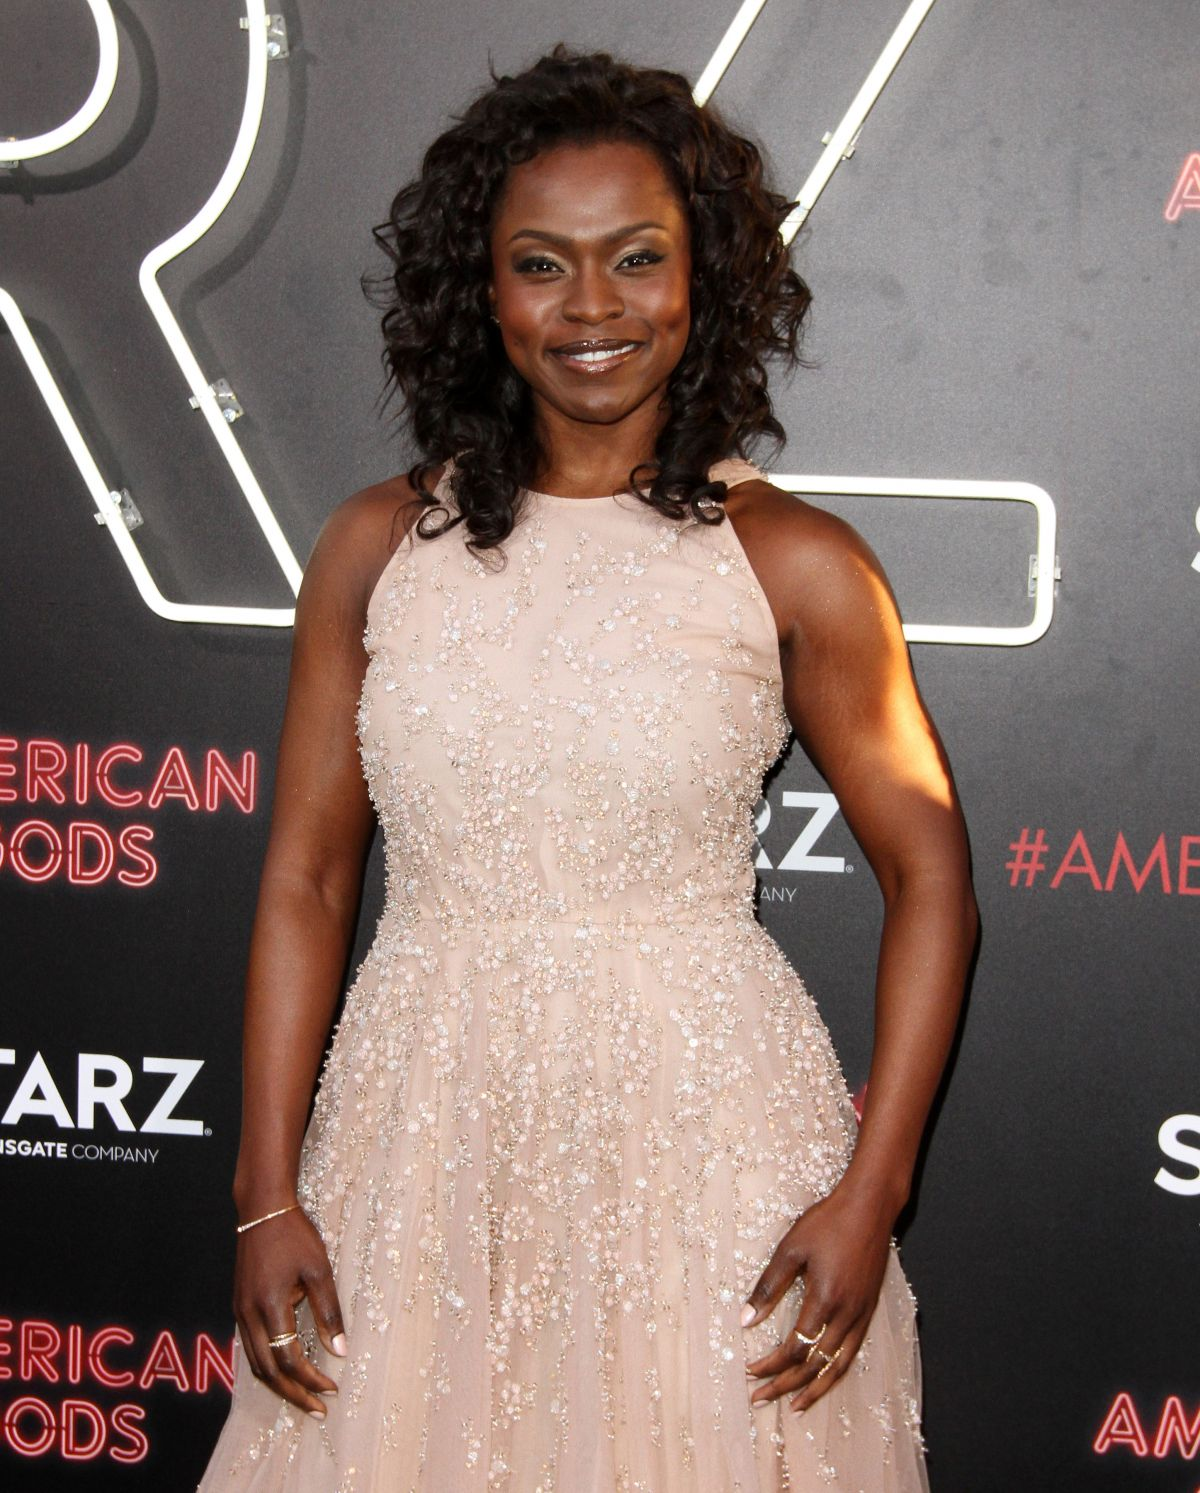 YETIDE BADAKI at American Gods Premiere in Los Angeles 04/20/2017